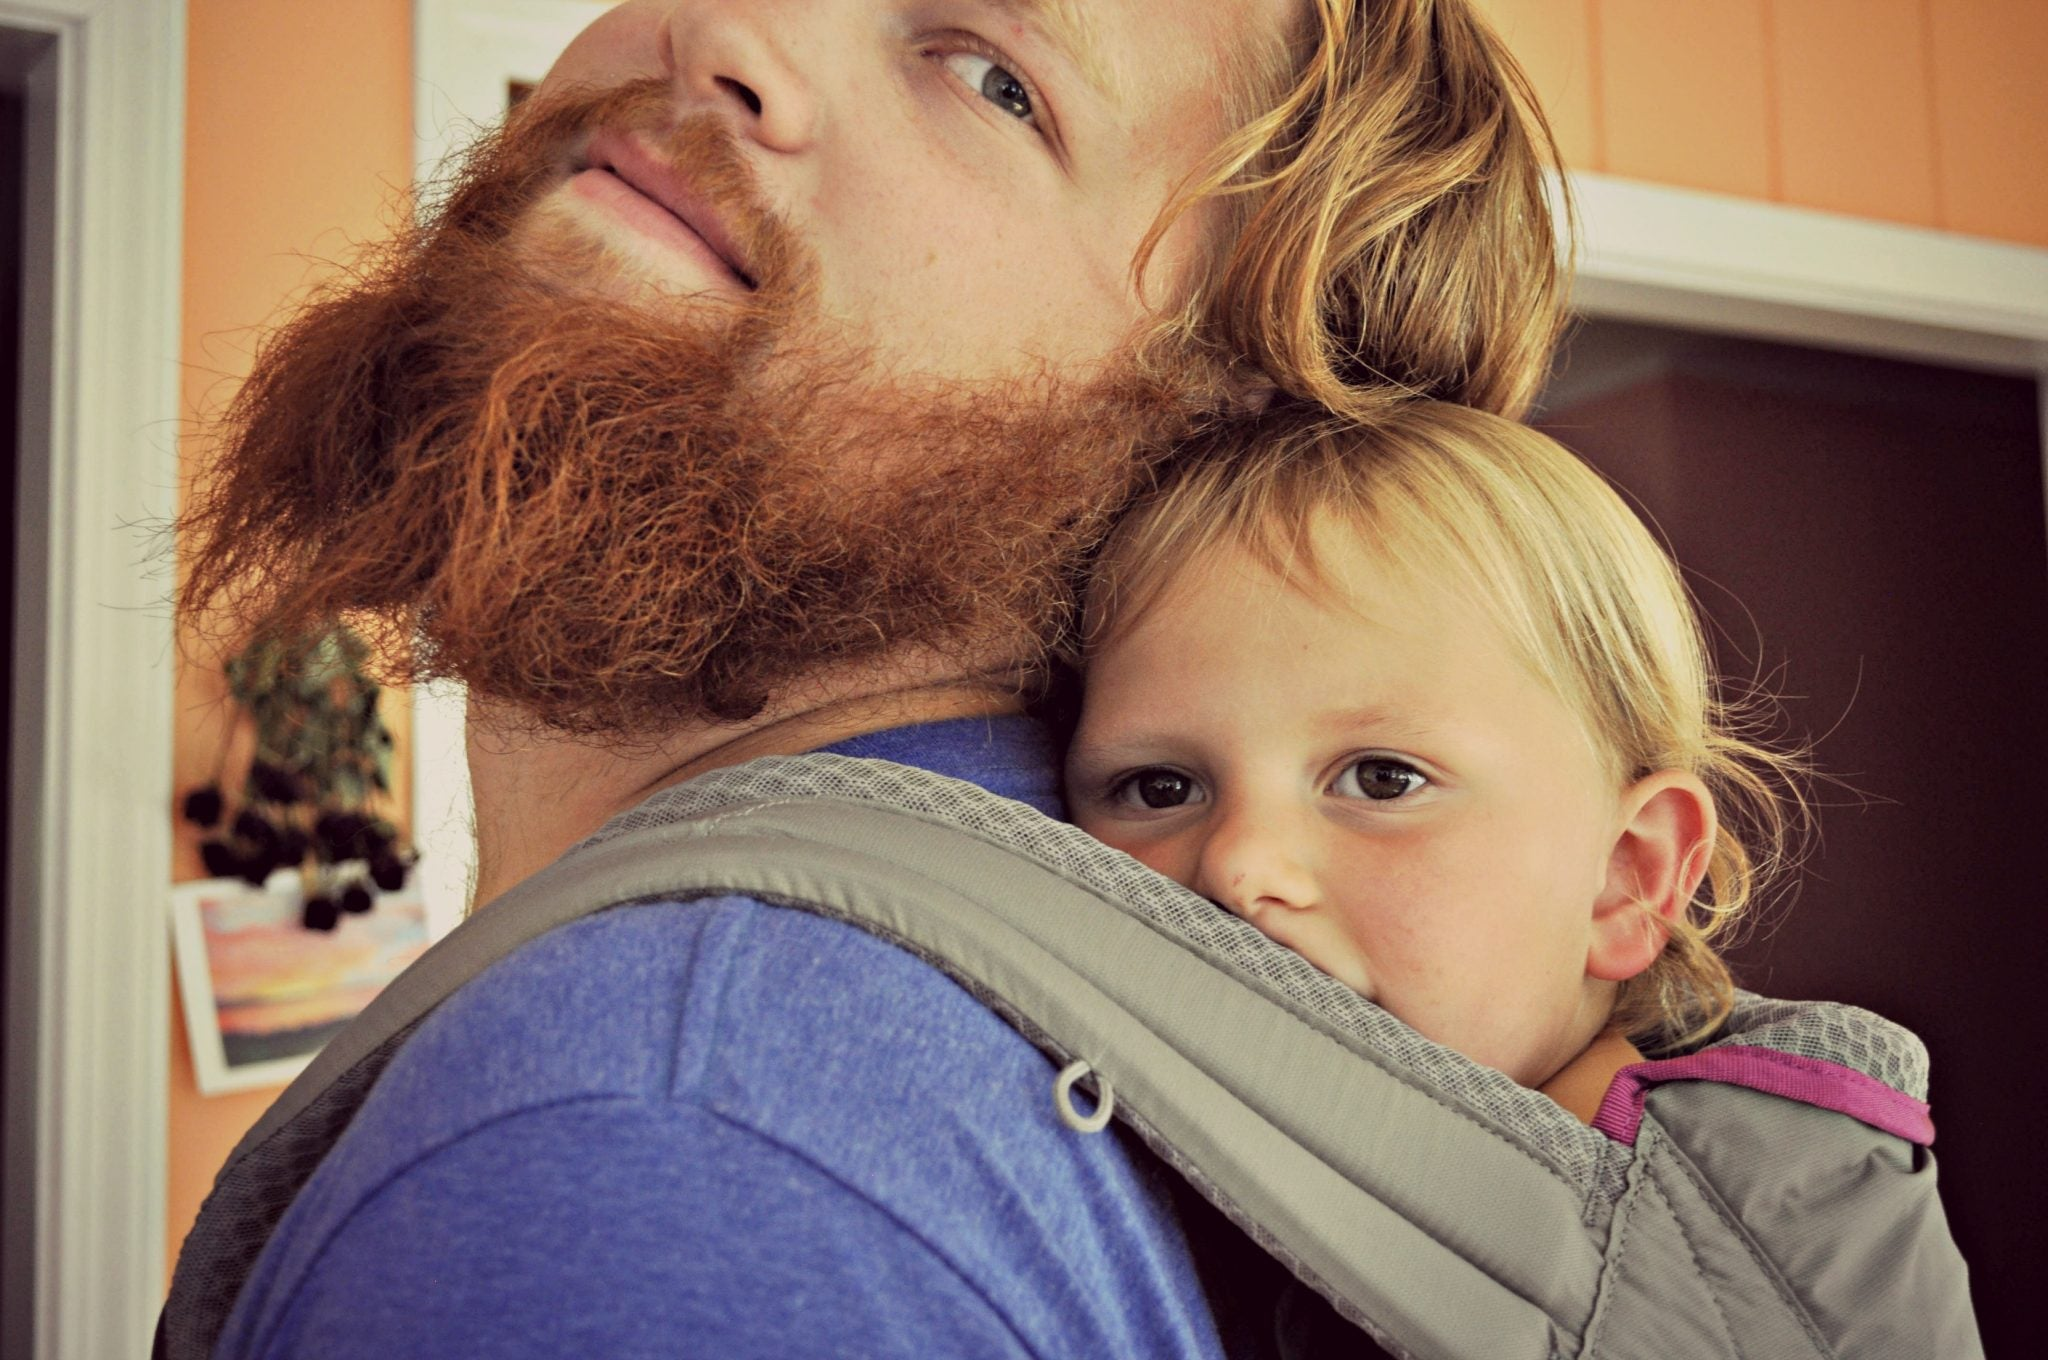 Dad with baby in Onya carrier